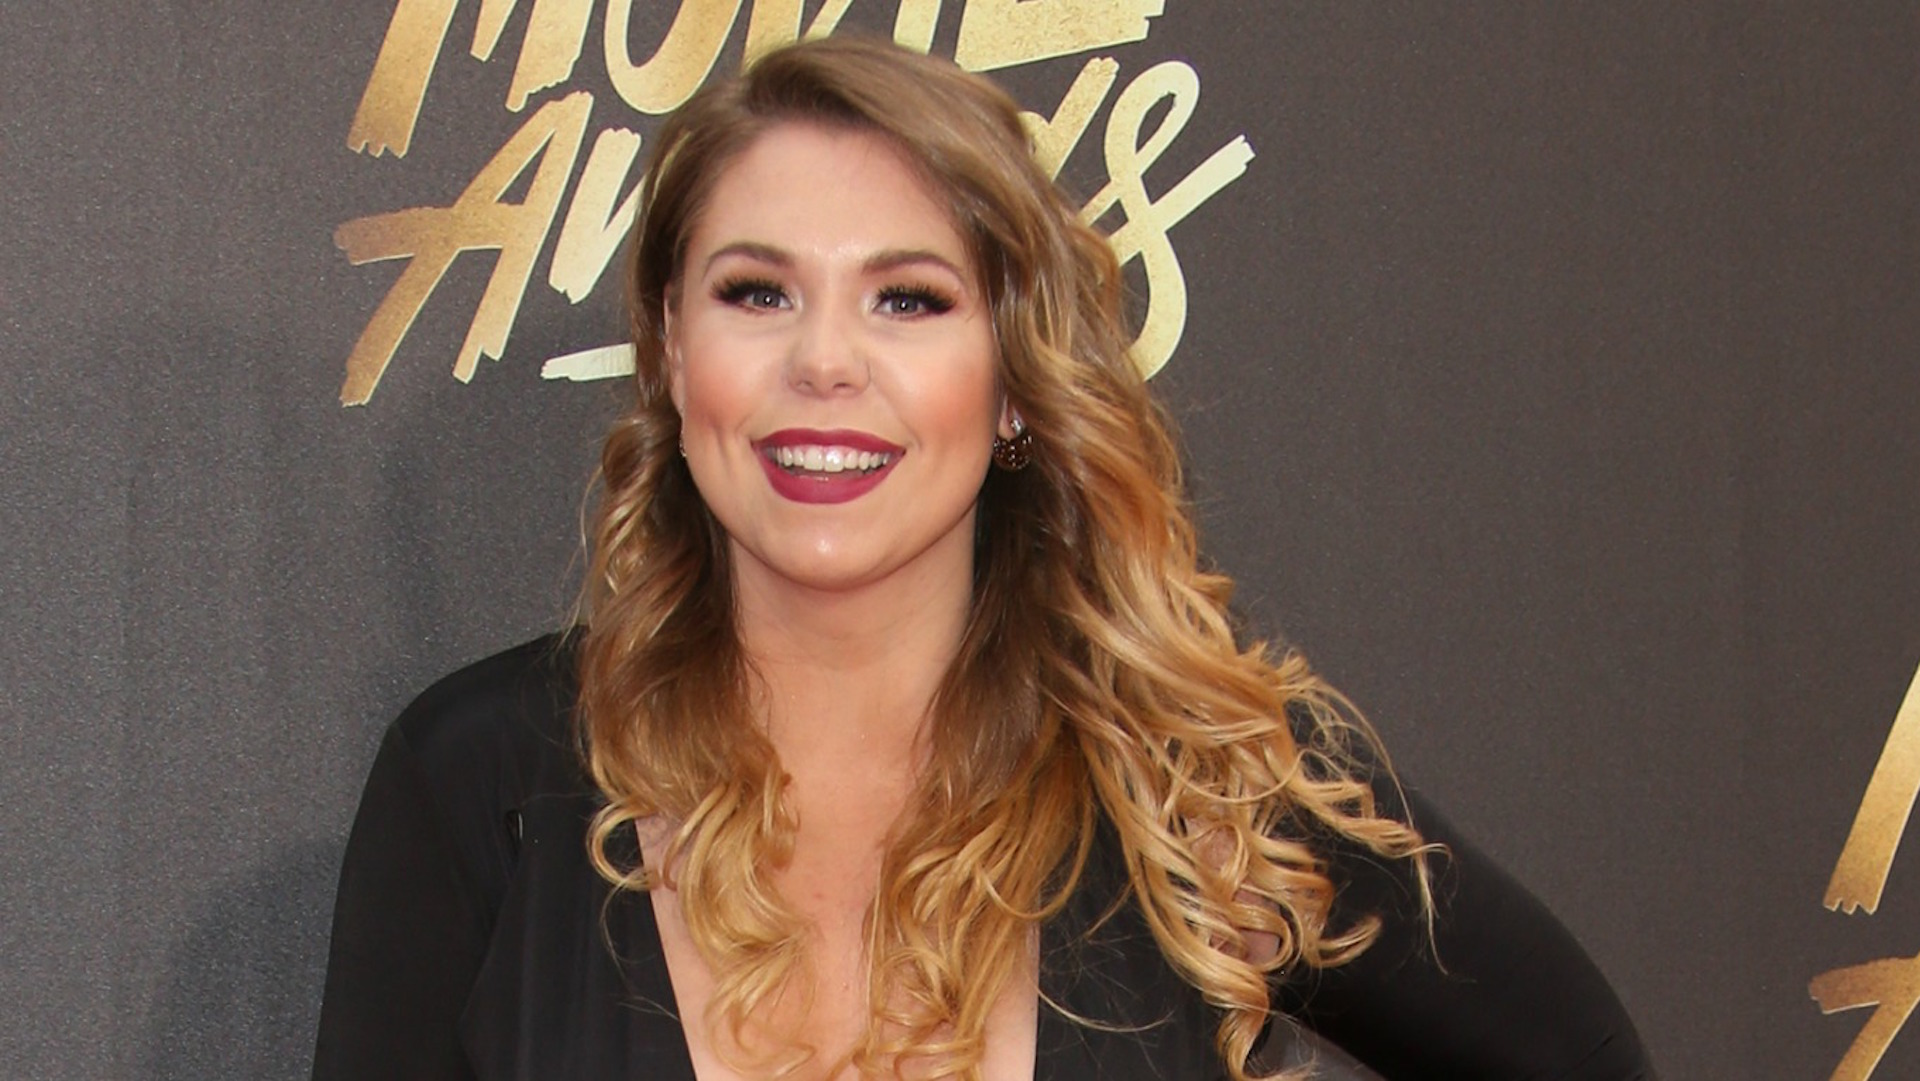 Kailyn Lowry Wasn't on the 'Teen Mom that's a Wrap 2017' Special. Know why